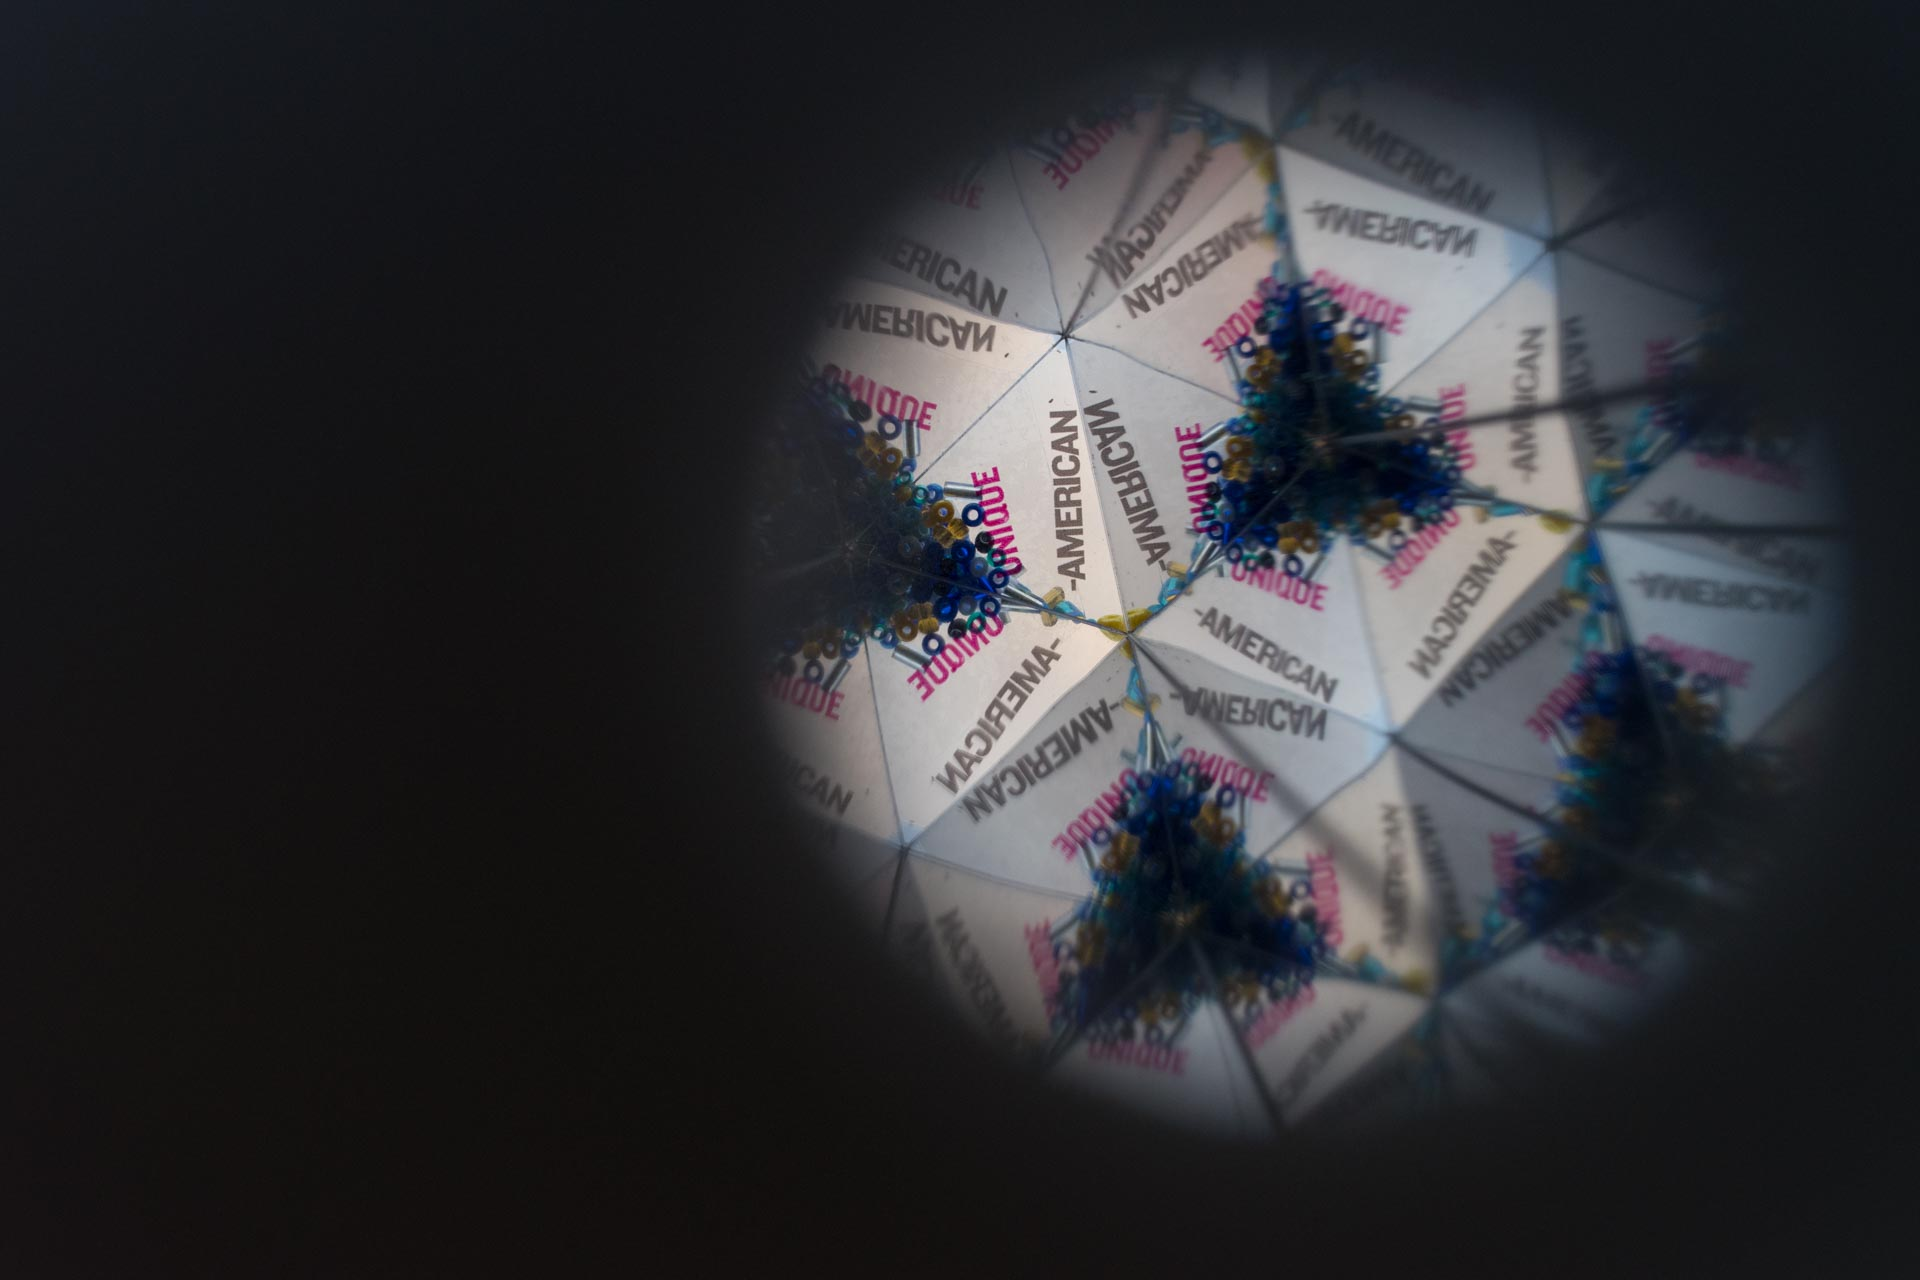 EDITED_Kaleidoscope-0054.jpg